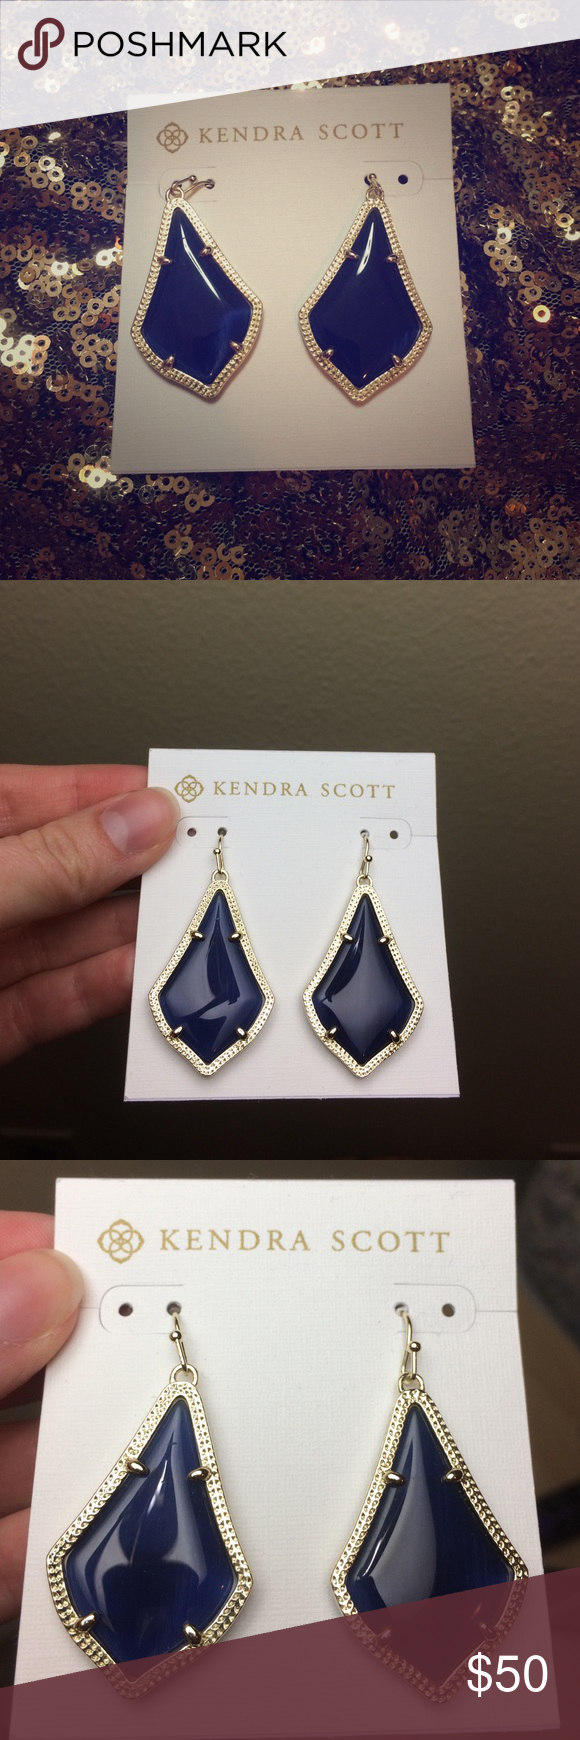 Kendra Scott Alex Earring Beautiful blue/navy Kendra Scott earrings. New, never worn, with all original bags and tags. Navy color (looks darker in the pictures) with gold trim. No trades, only reasonable offers please. Kendra Scott Jewelry Earrings